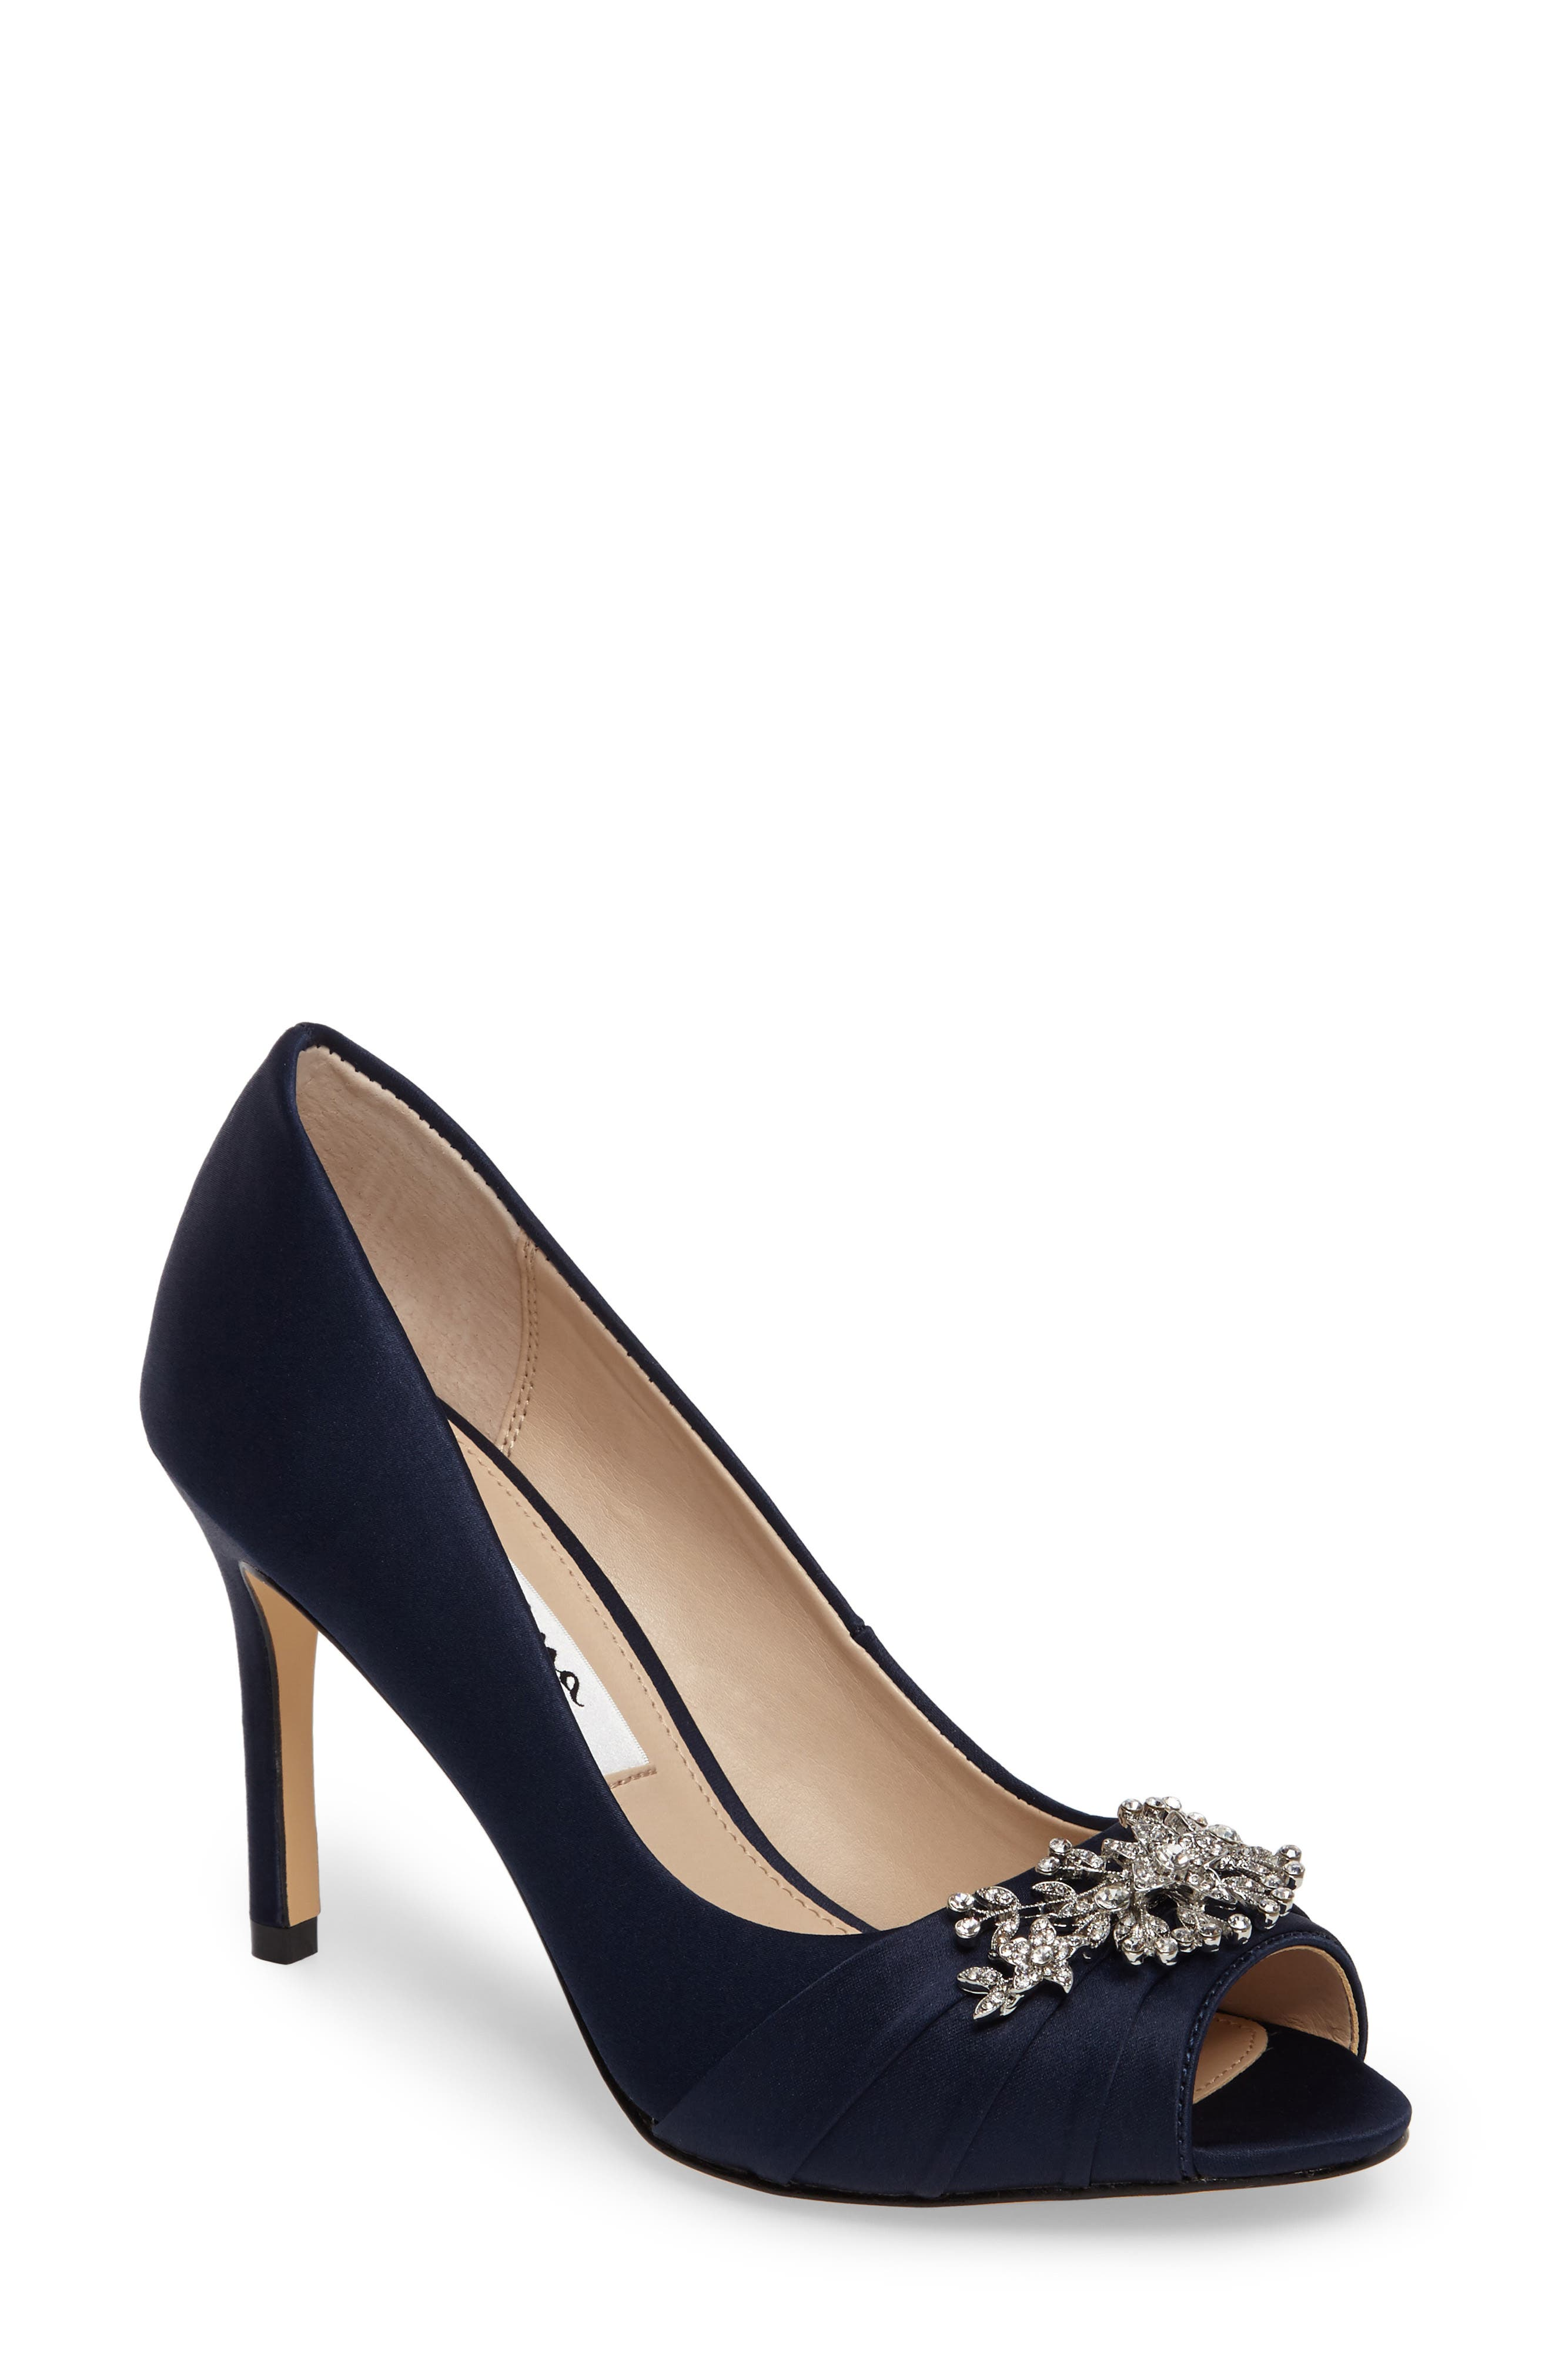 Main Image - Nina Rumina Embellished Peep Toe Pump (Women)